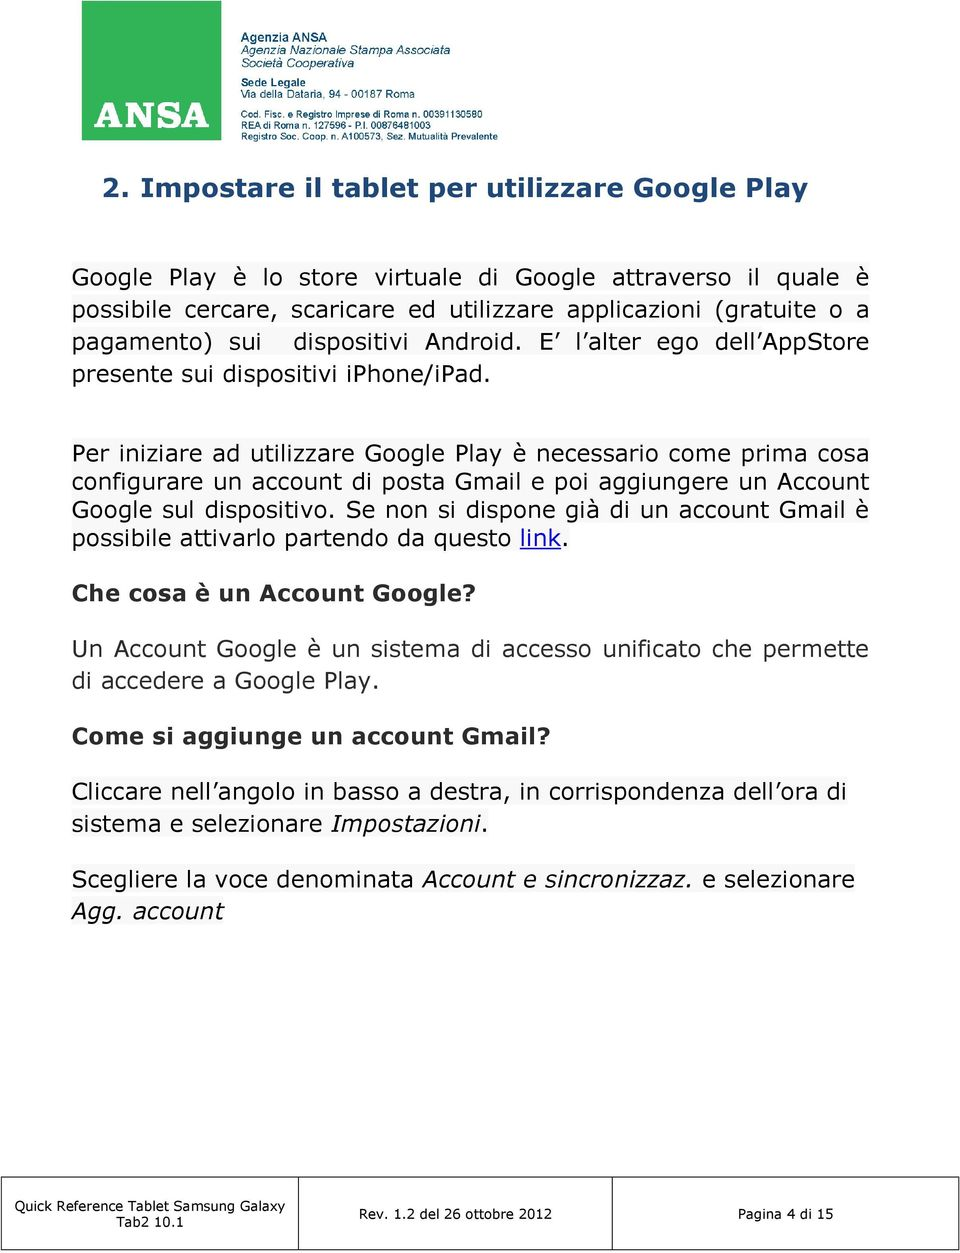 Per iniziare ad utilizzare Google Play è necessario come prima cosa configurare un account di posta Gmail e poi aggiungere un Account Google sul dispositivo.